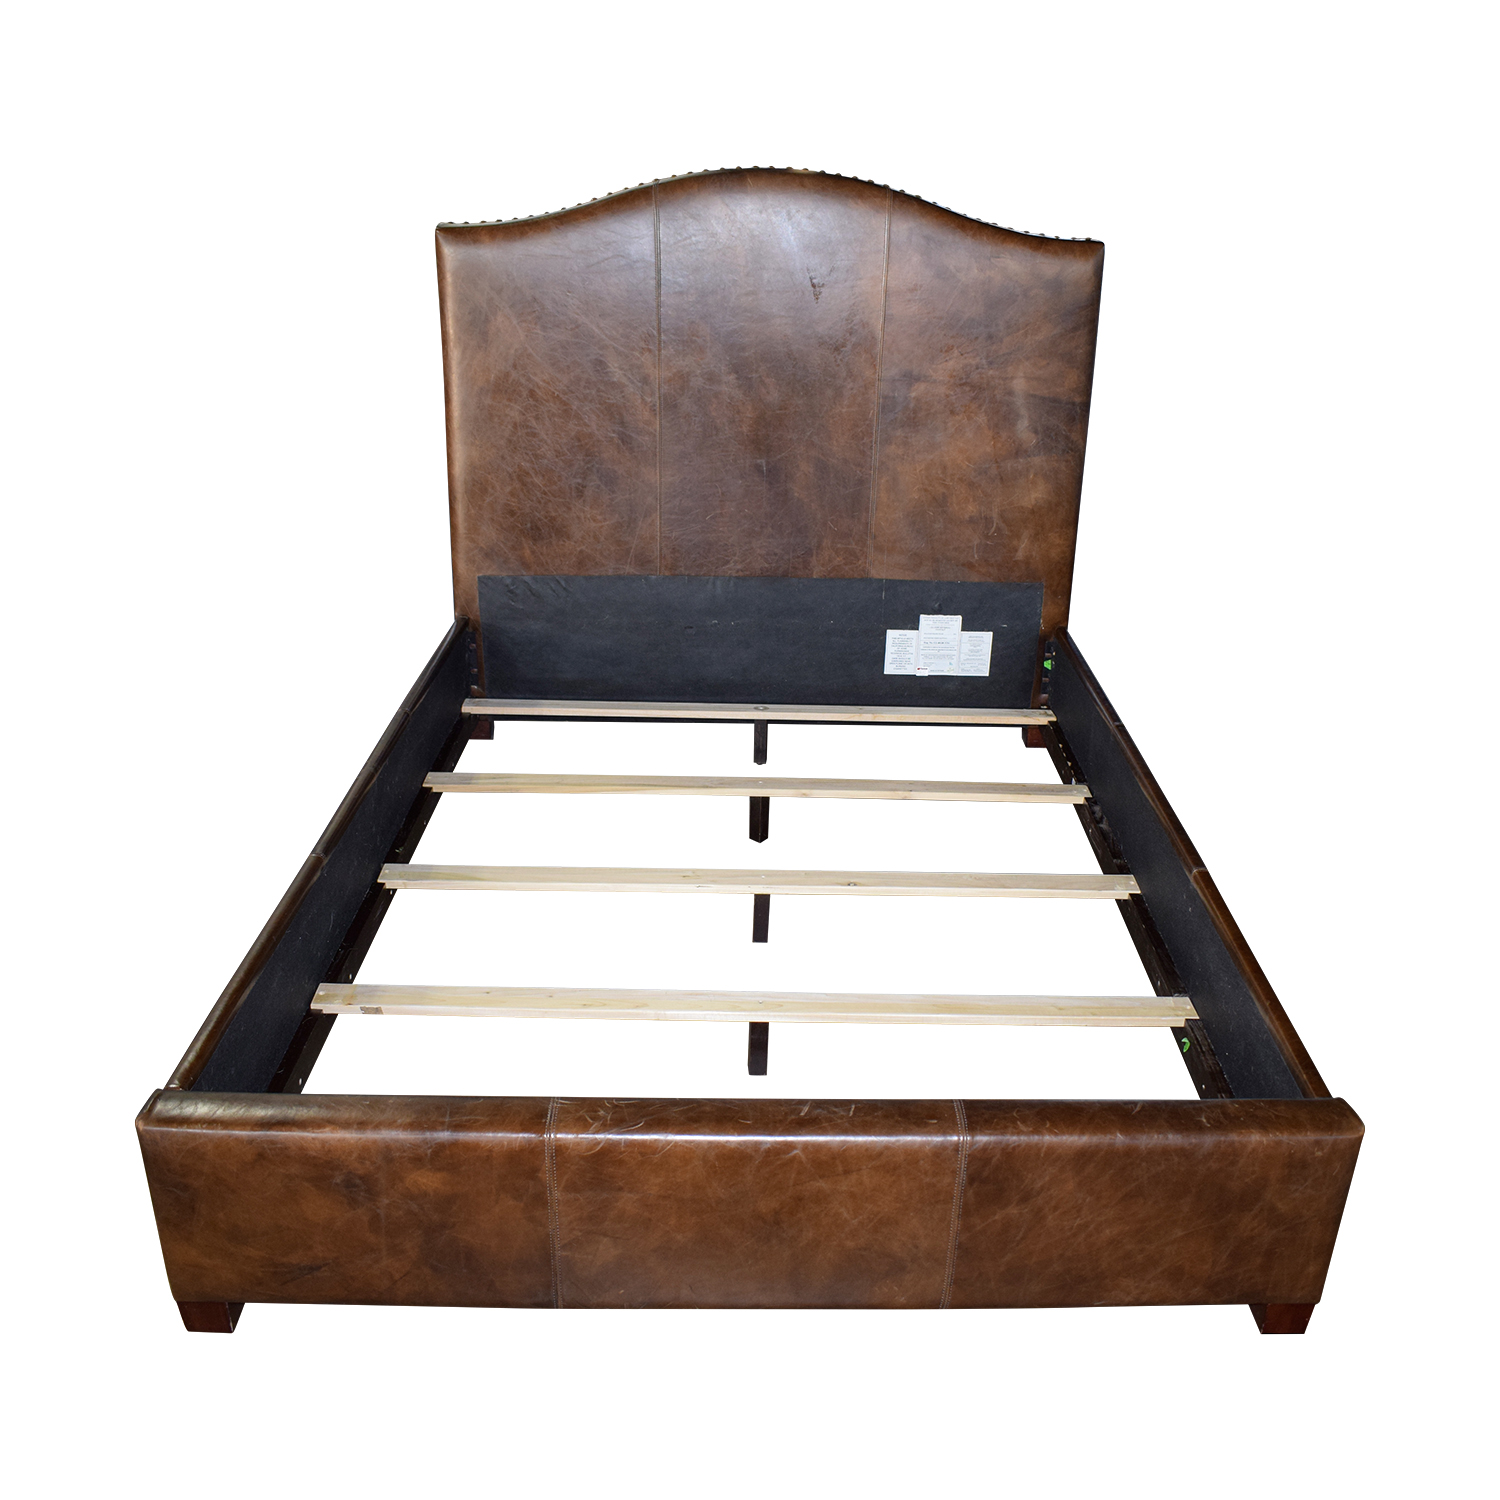 Crate & Barrel Crate & Barrel Brown Leather Queen Bed Frame price